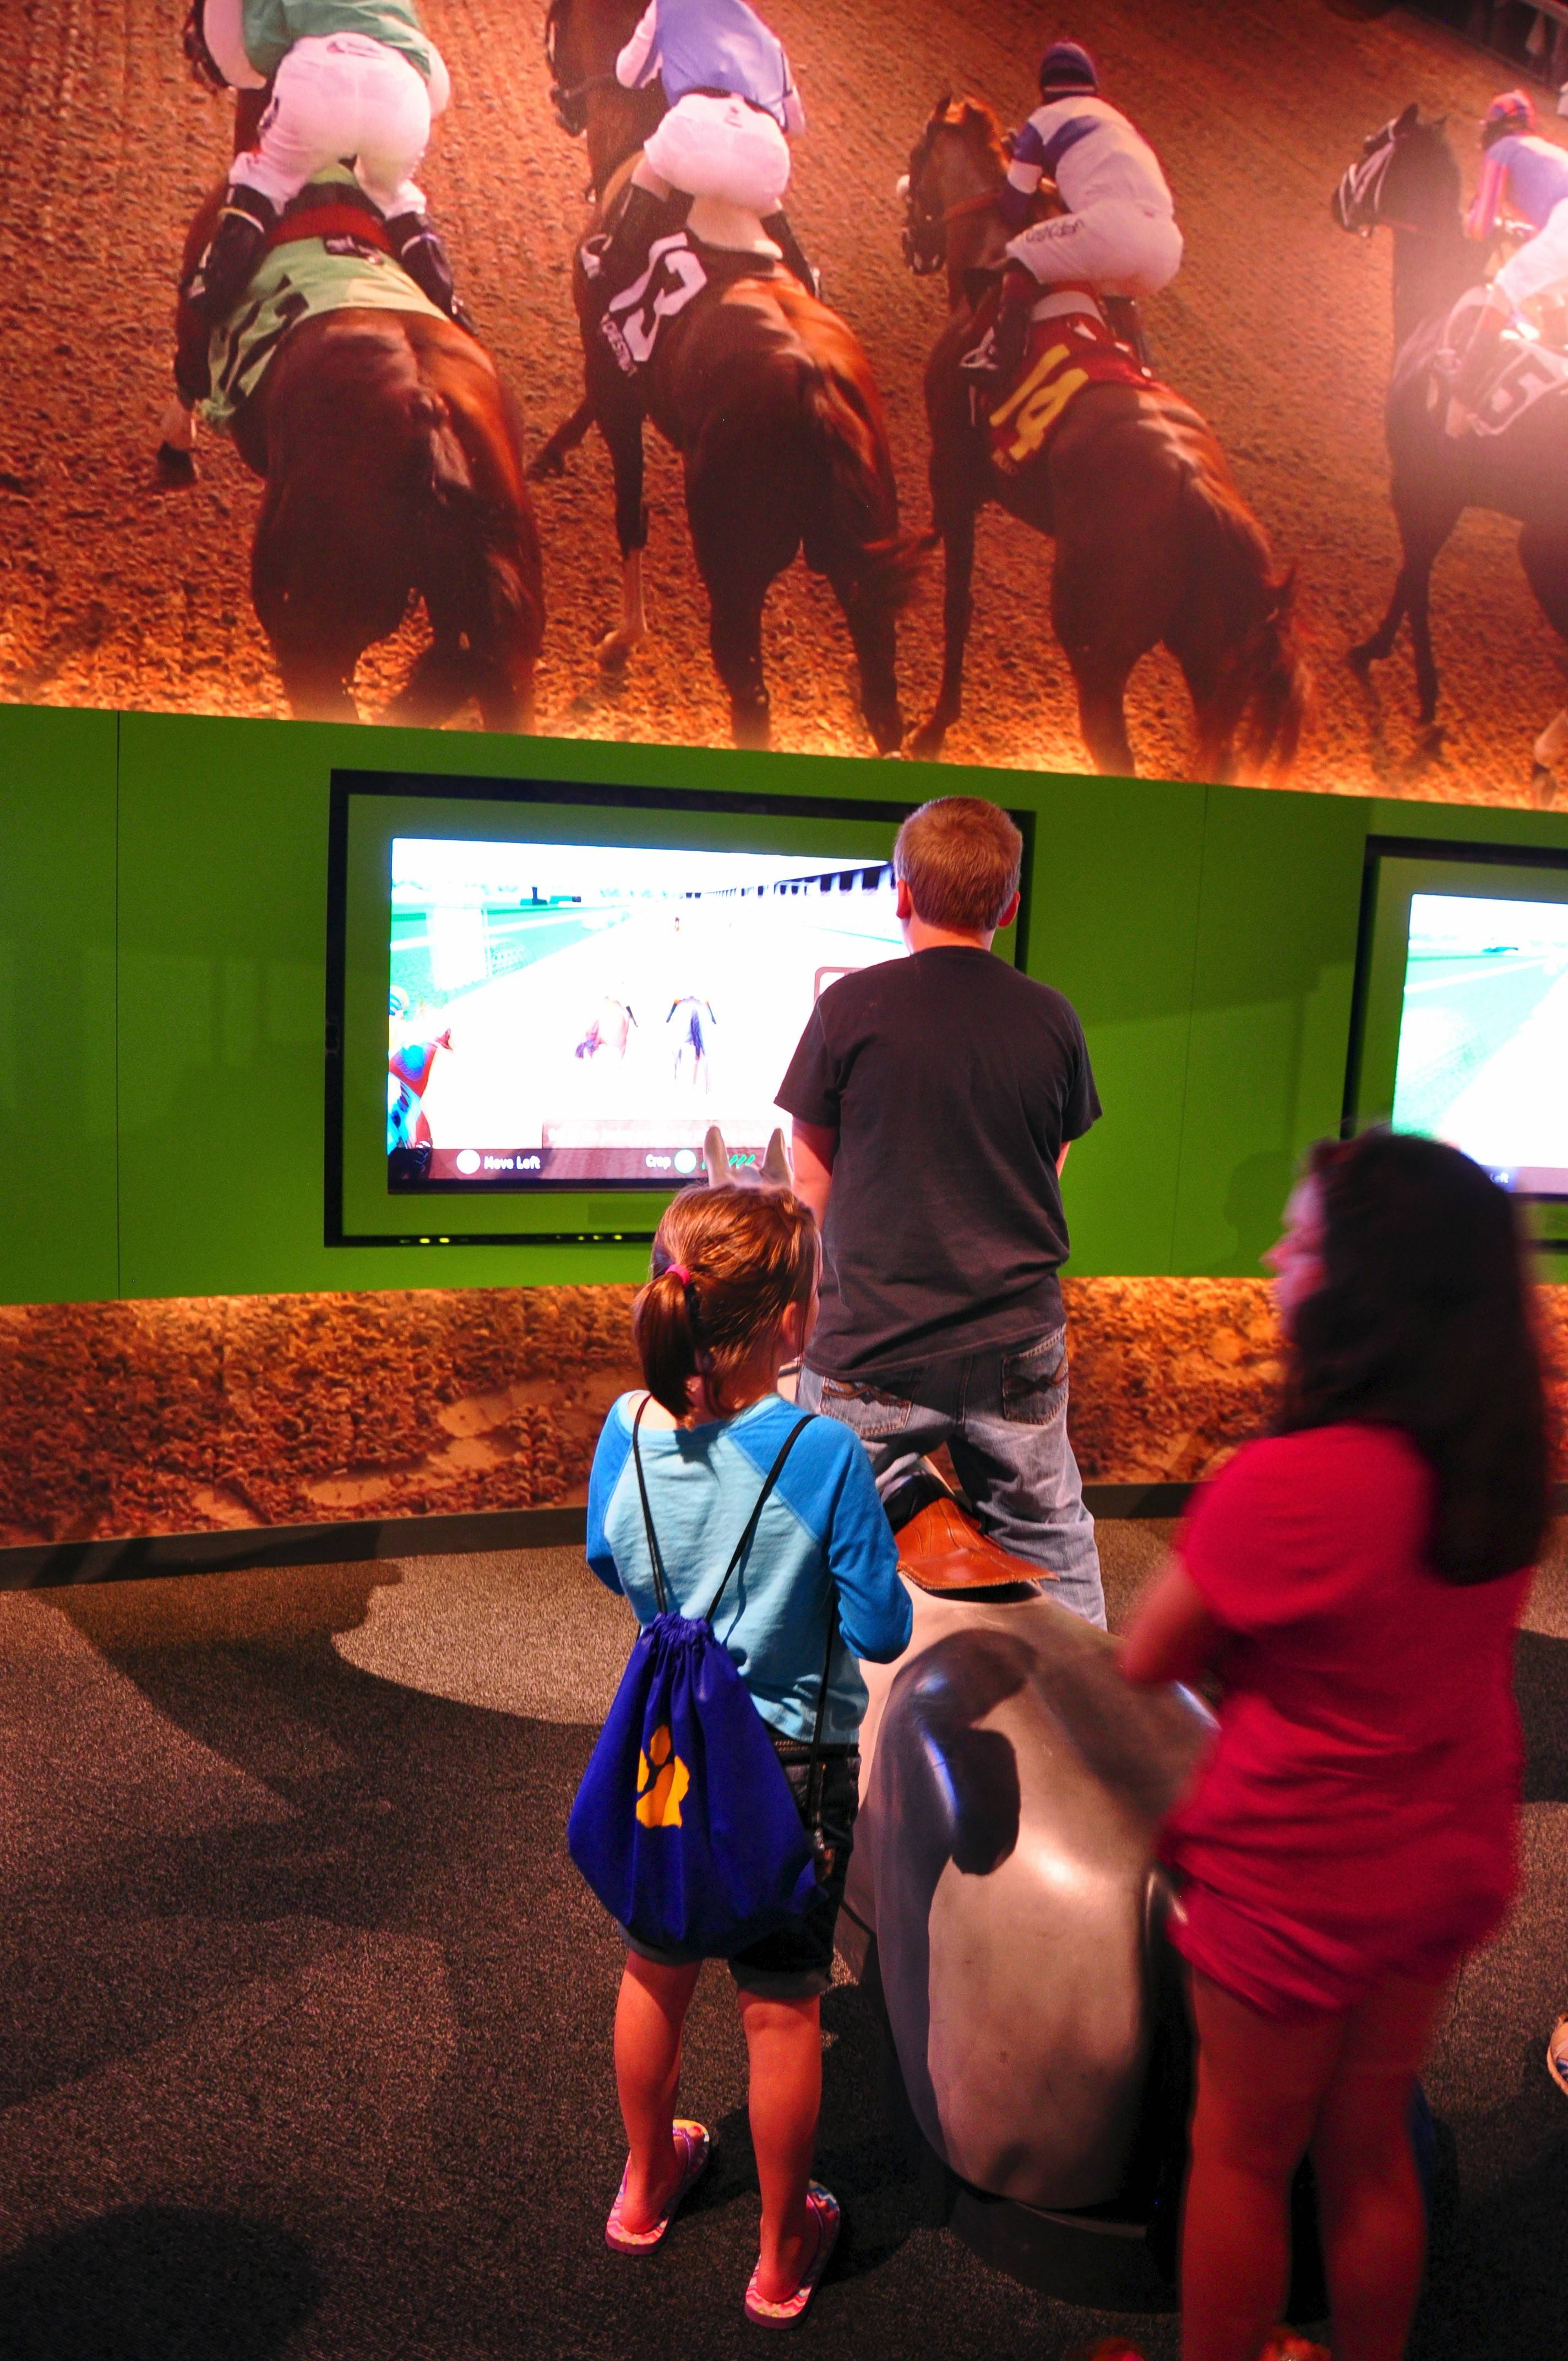 The Kentucky Derby Museum at Churchill Downs has two floors of exhibits about the Derby and horse racing, including a chance to mount a simulated horse and race on the track via video screen.